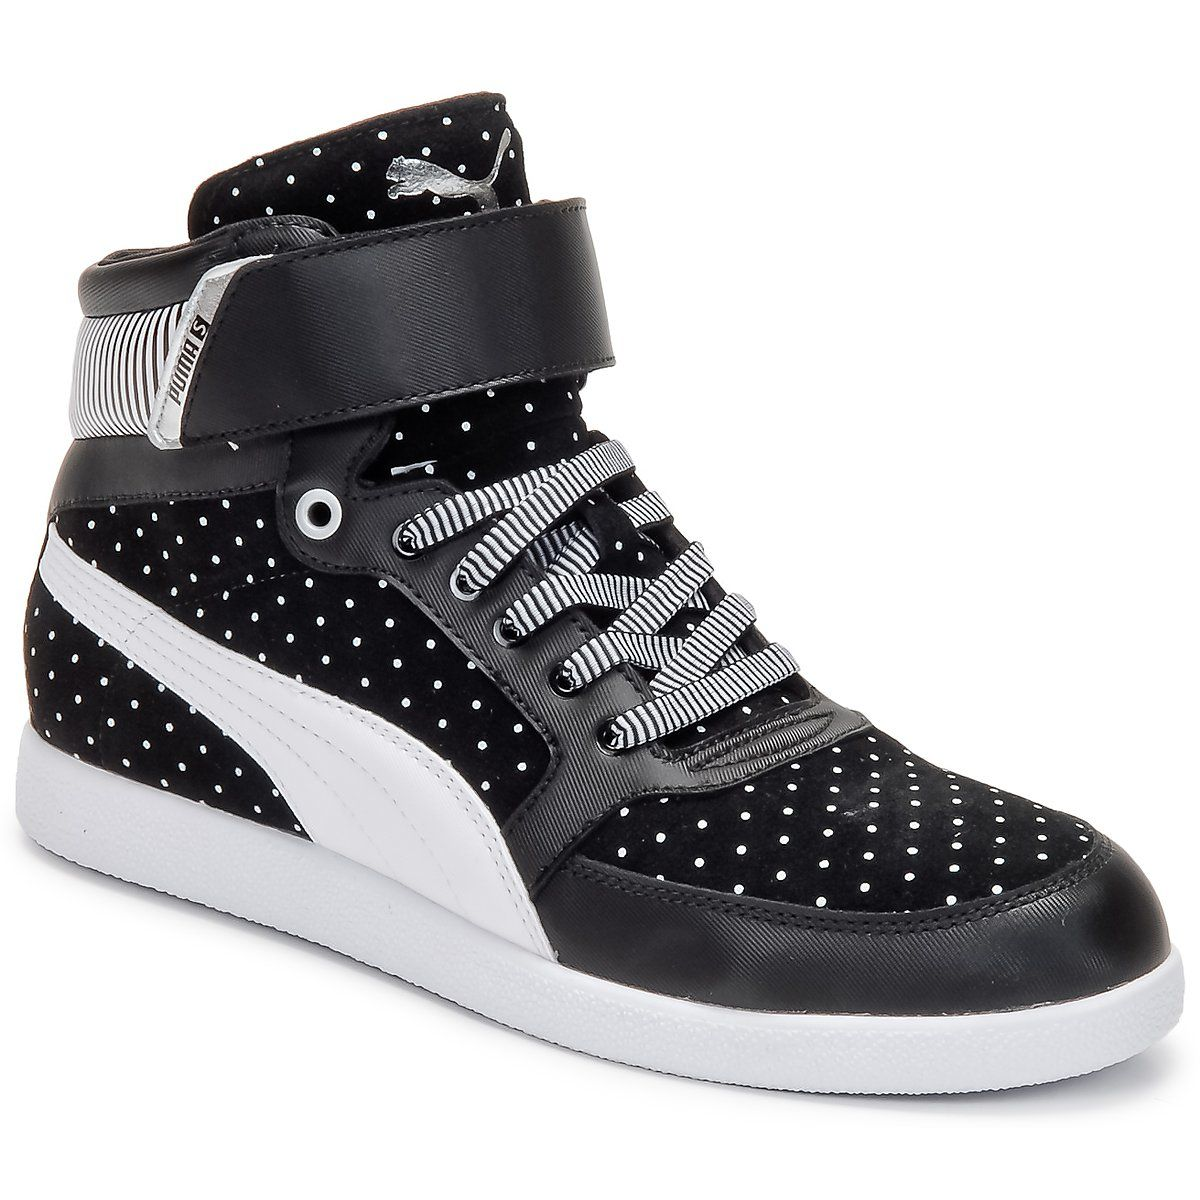 22f41911c7e5 Hi top trainers Puma SKYLAA HI POLKA DOT WNS BLACK   White   White - Free  Next Day Delivery with Rubbersole.co.uk ! - Shoes Women £ 46.74